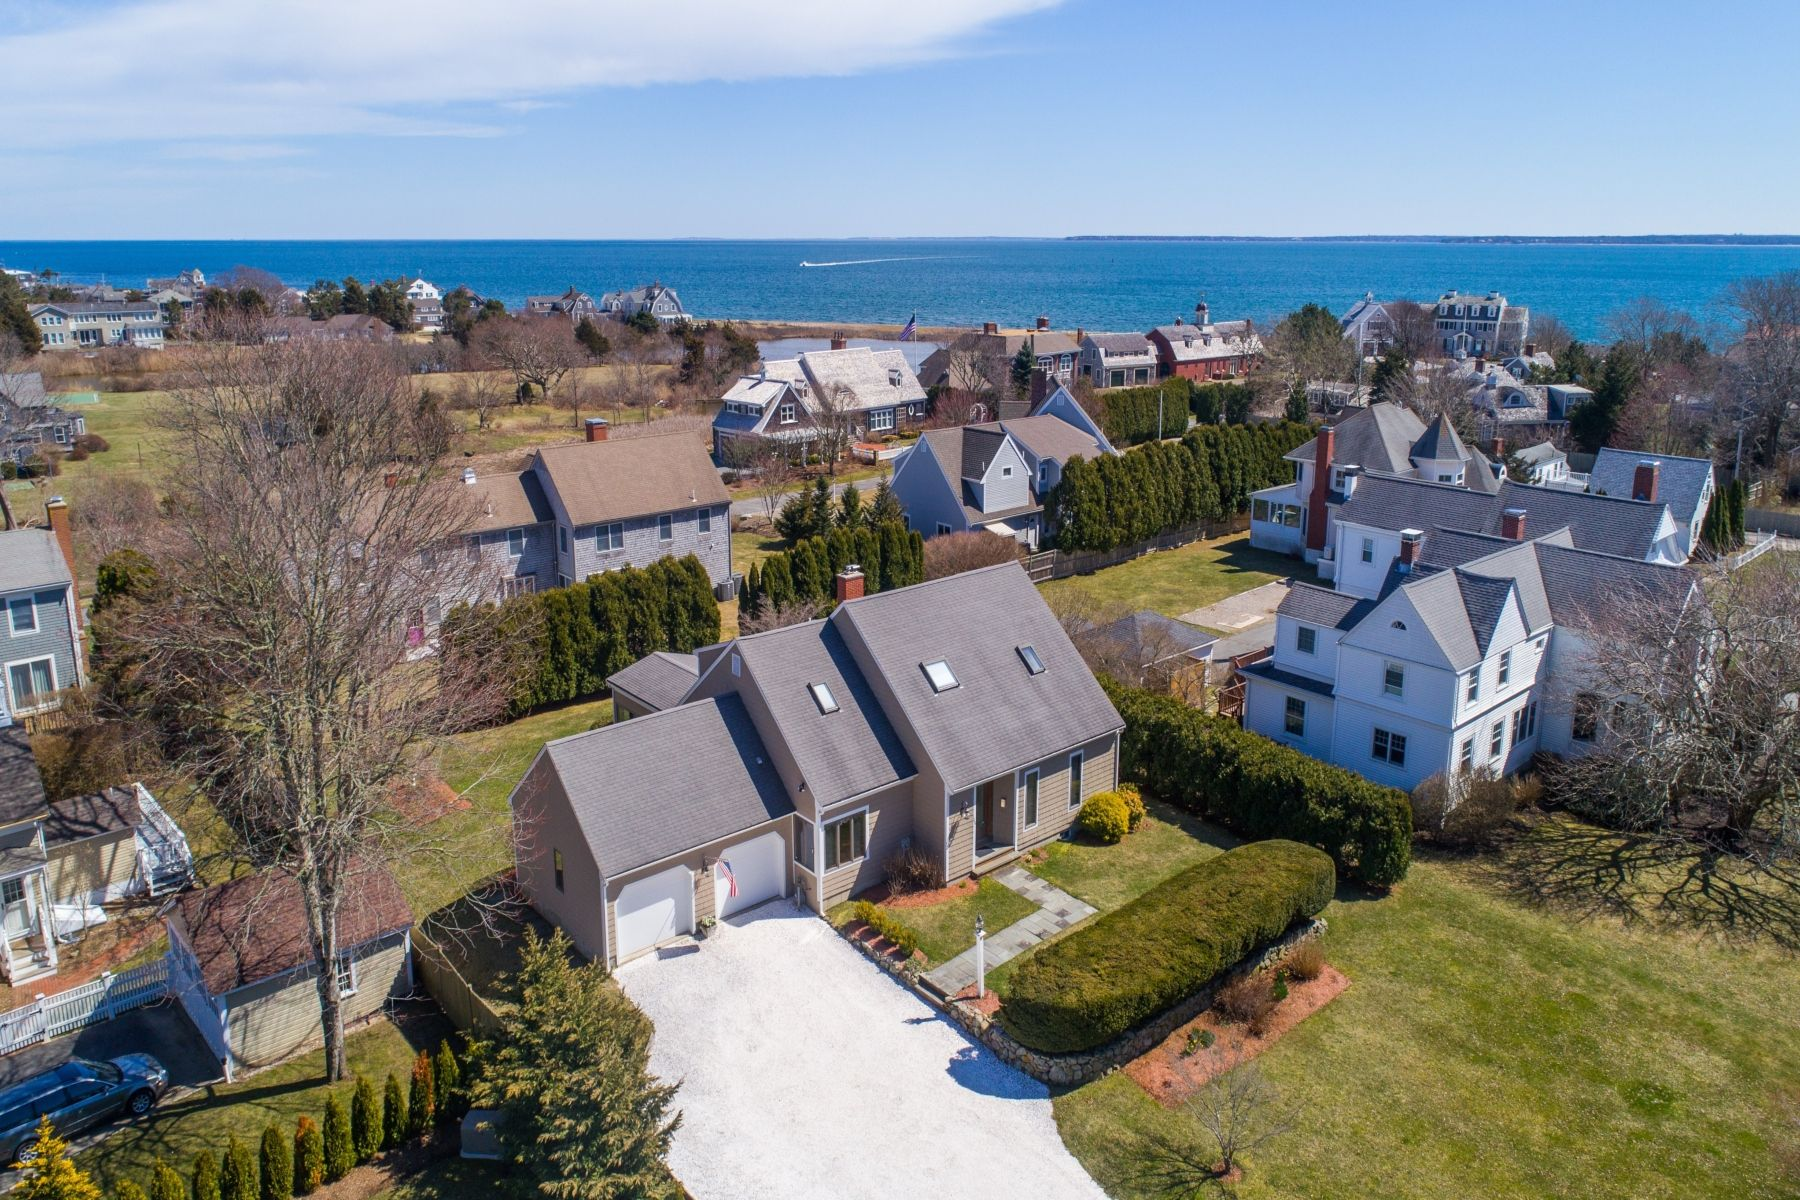 Single Family Home for Active at The Essence of Cape Cod Living 254 Shore Street Falmouth, Massachusetts 02540 United States